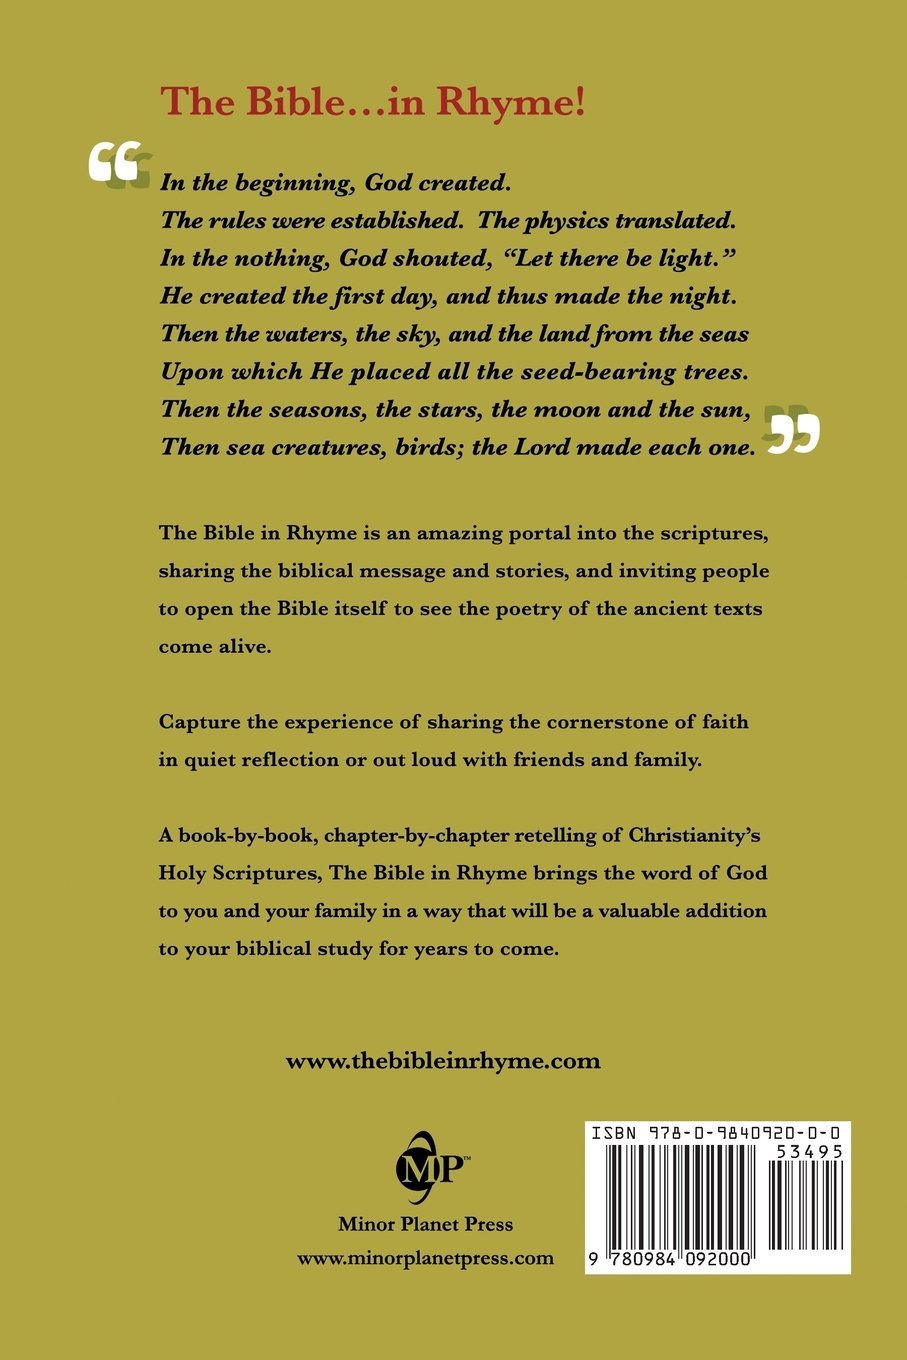 The Bible in Rhyme: Kyle Holt: 9780984092000: Amazon.com: Books